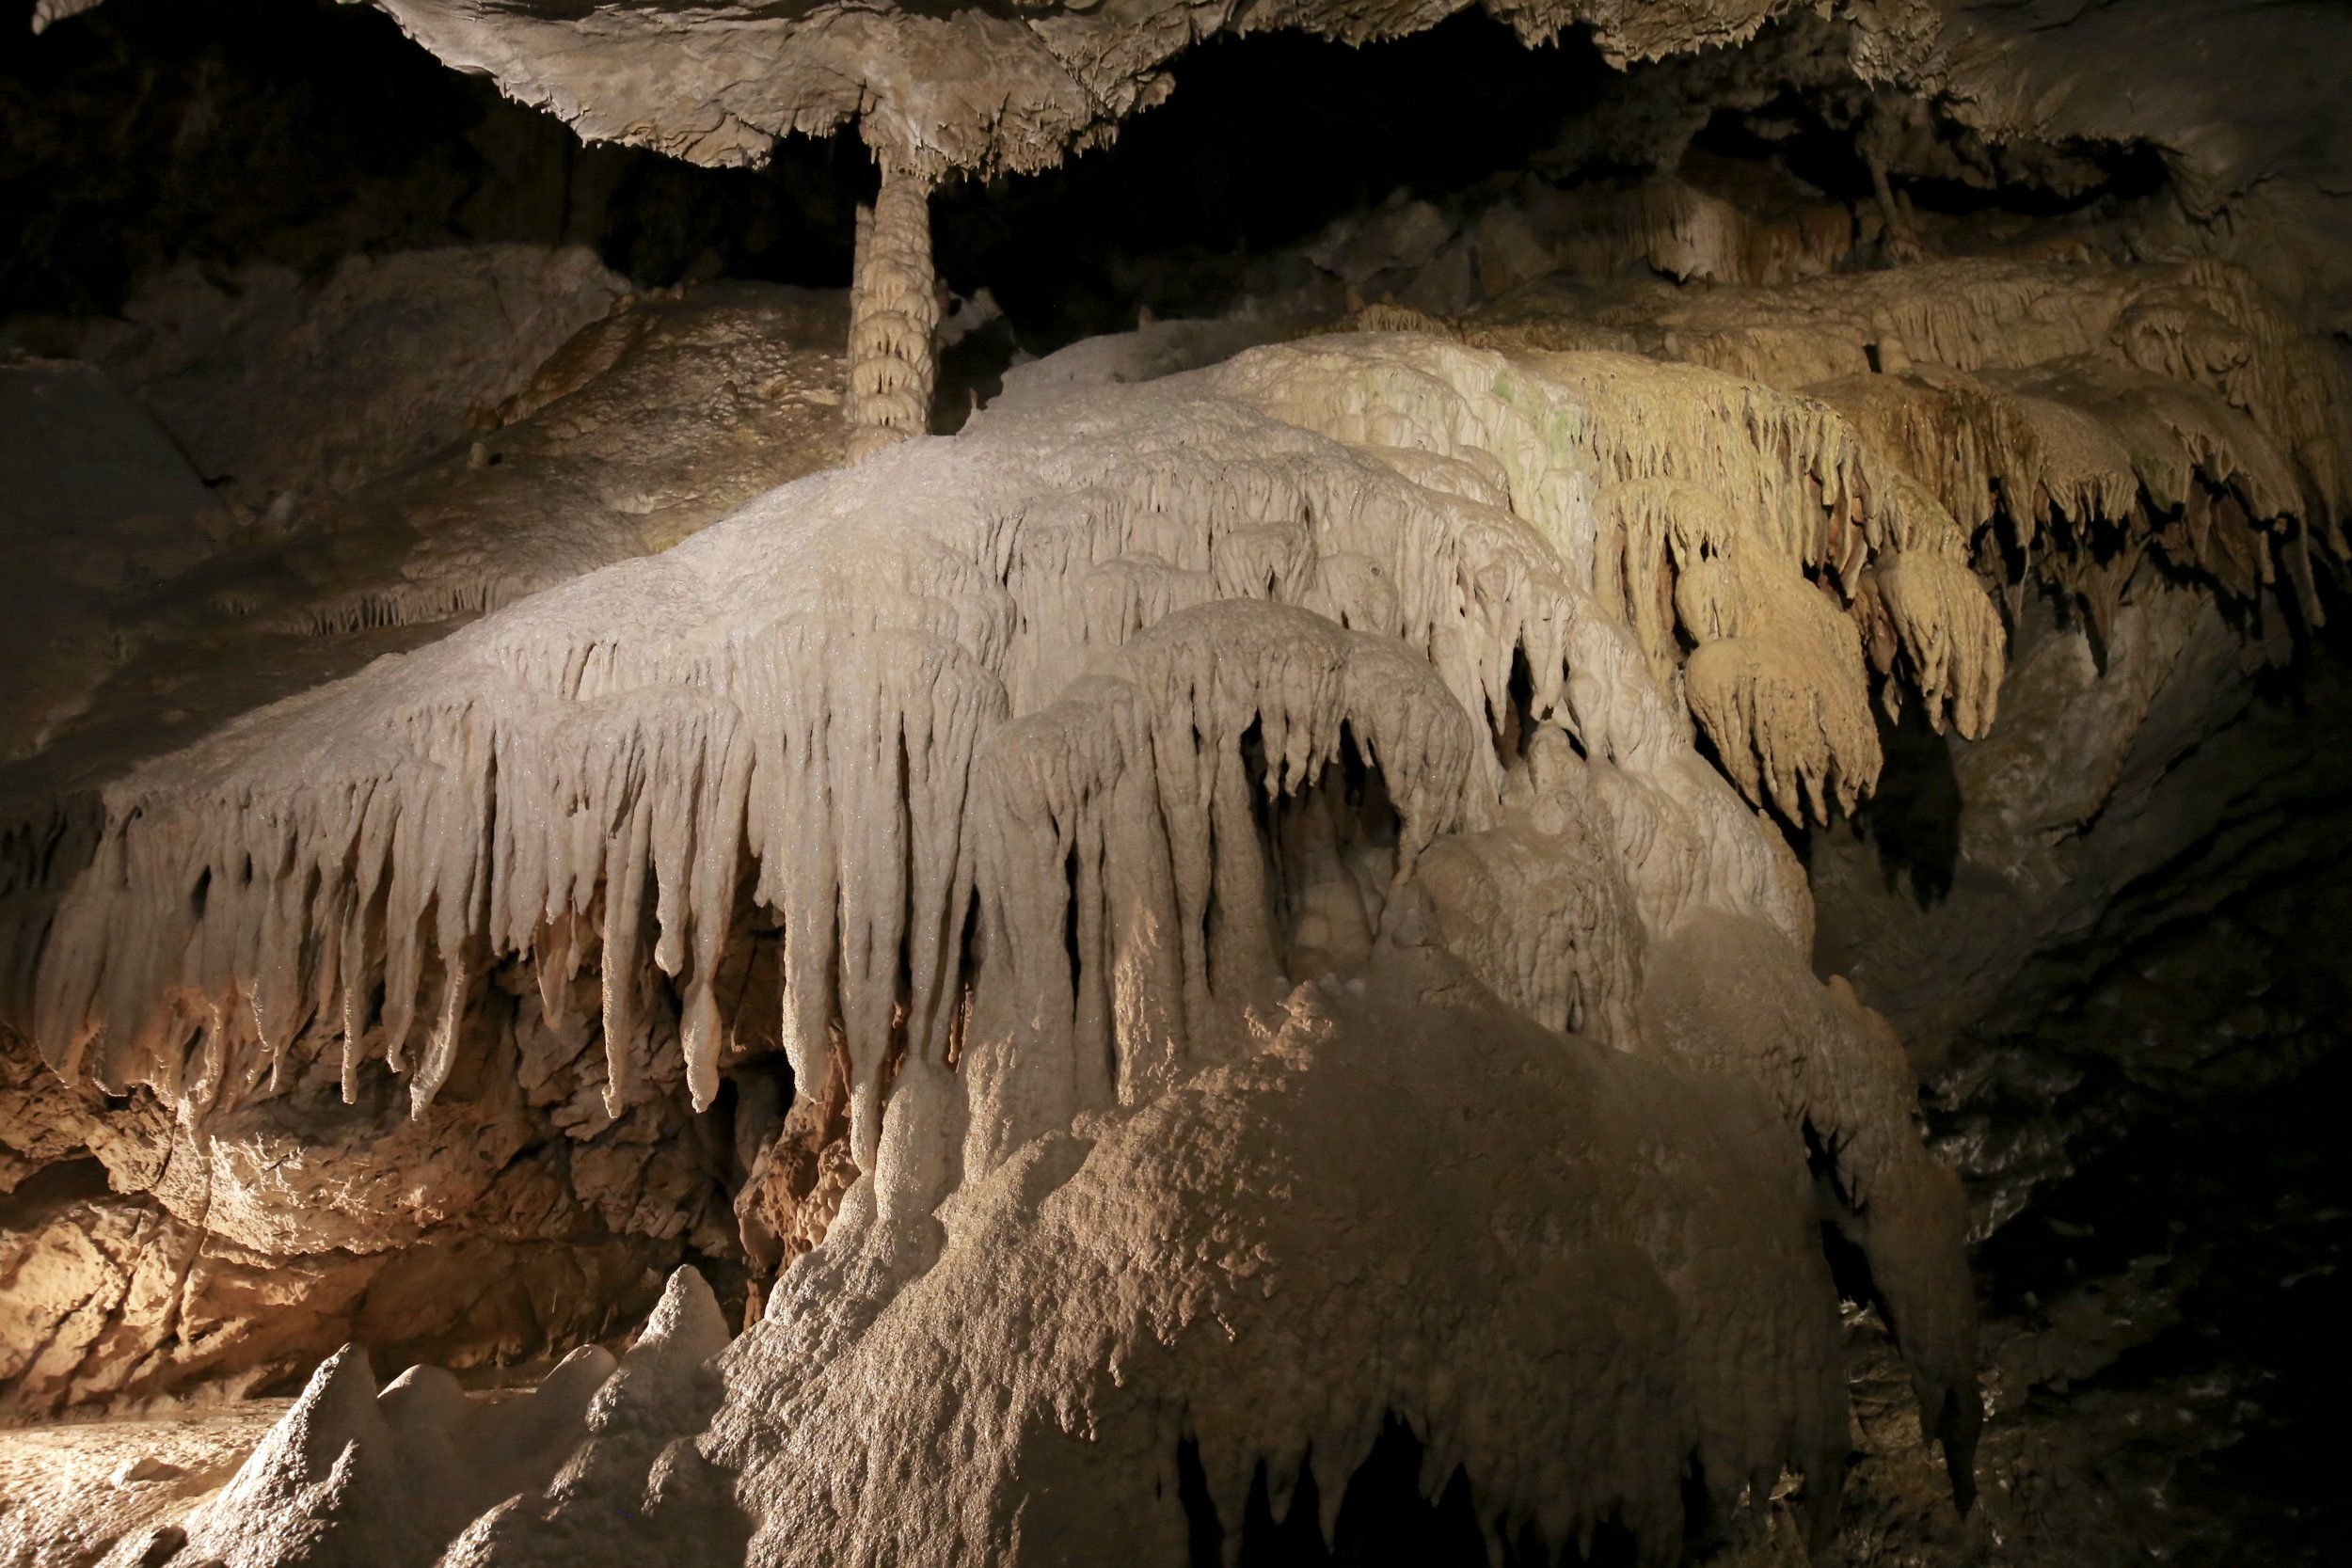 White calcium limestone waterfall in an underground cave - with unicorn horn stalagmites.